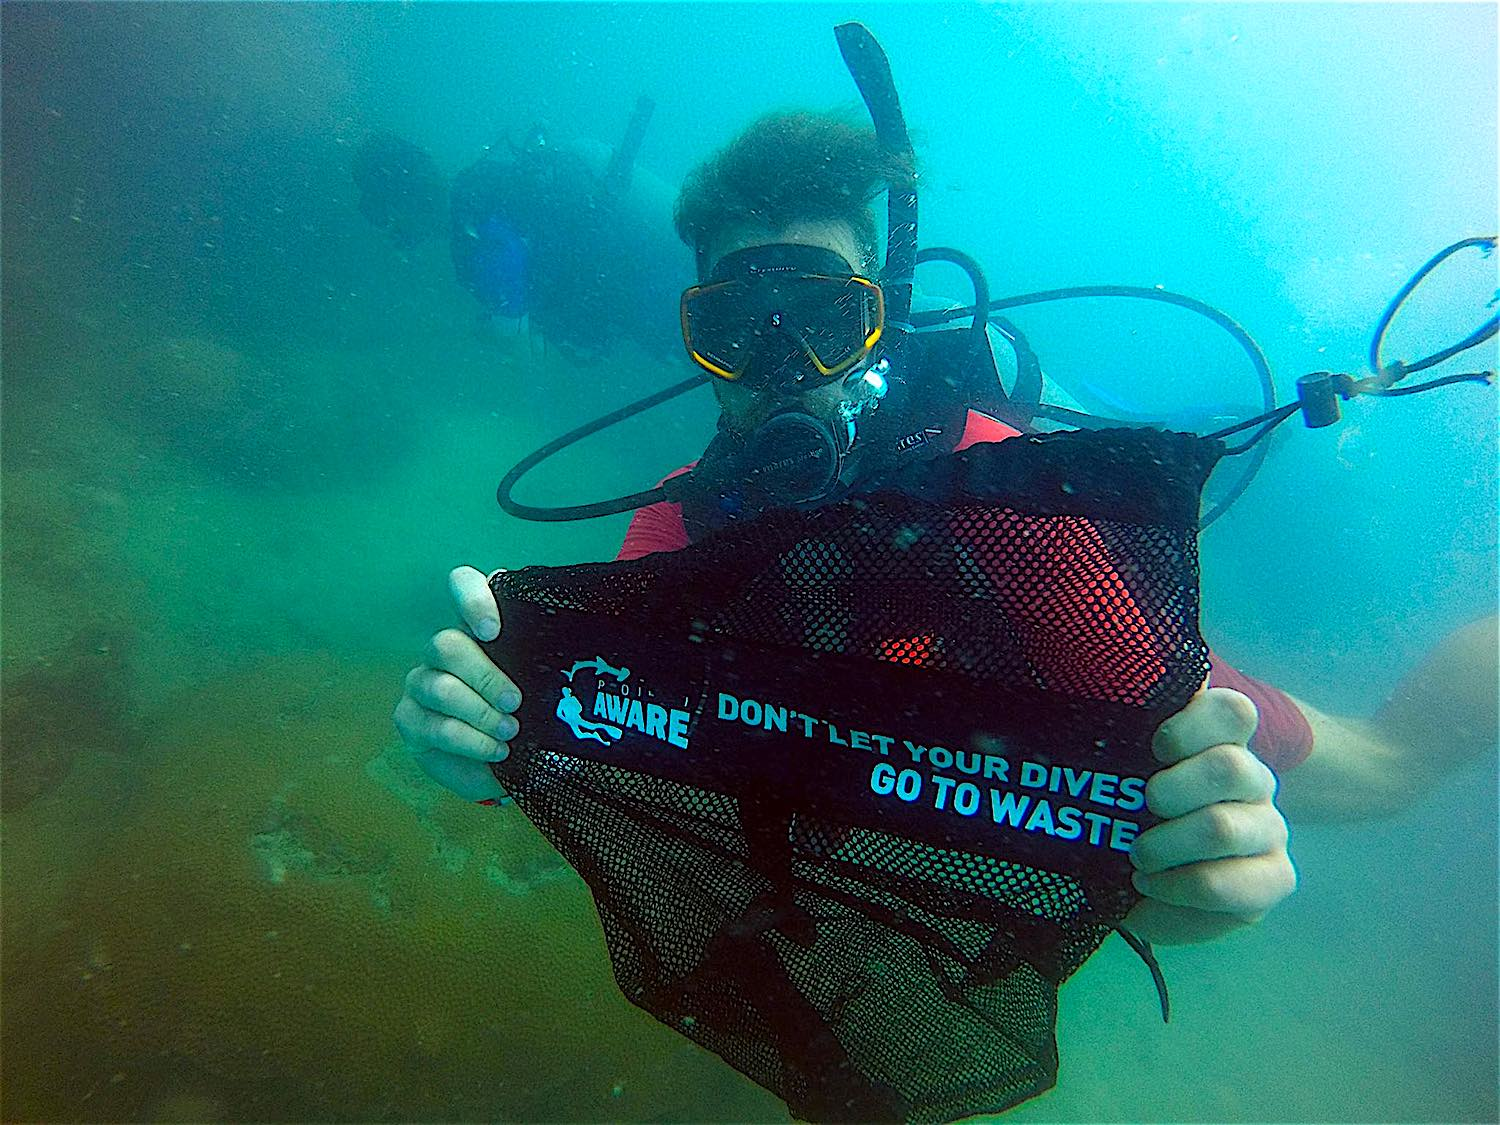 www.thefunkyturtle.com Dive-Against-Debris on koh tao